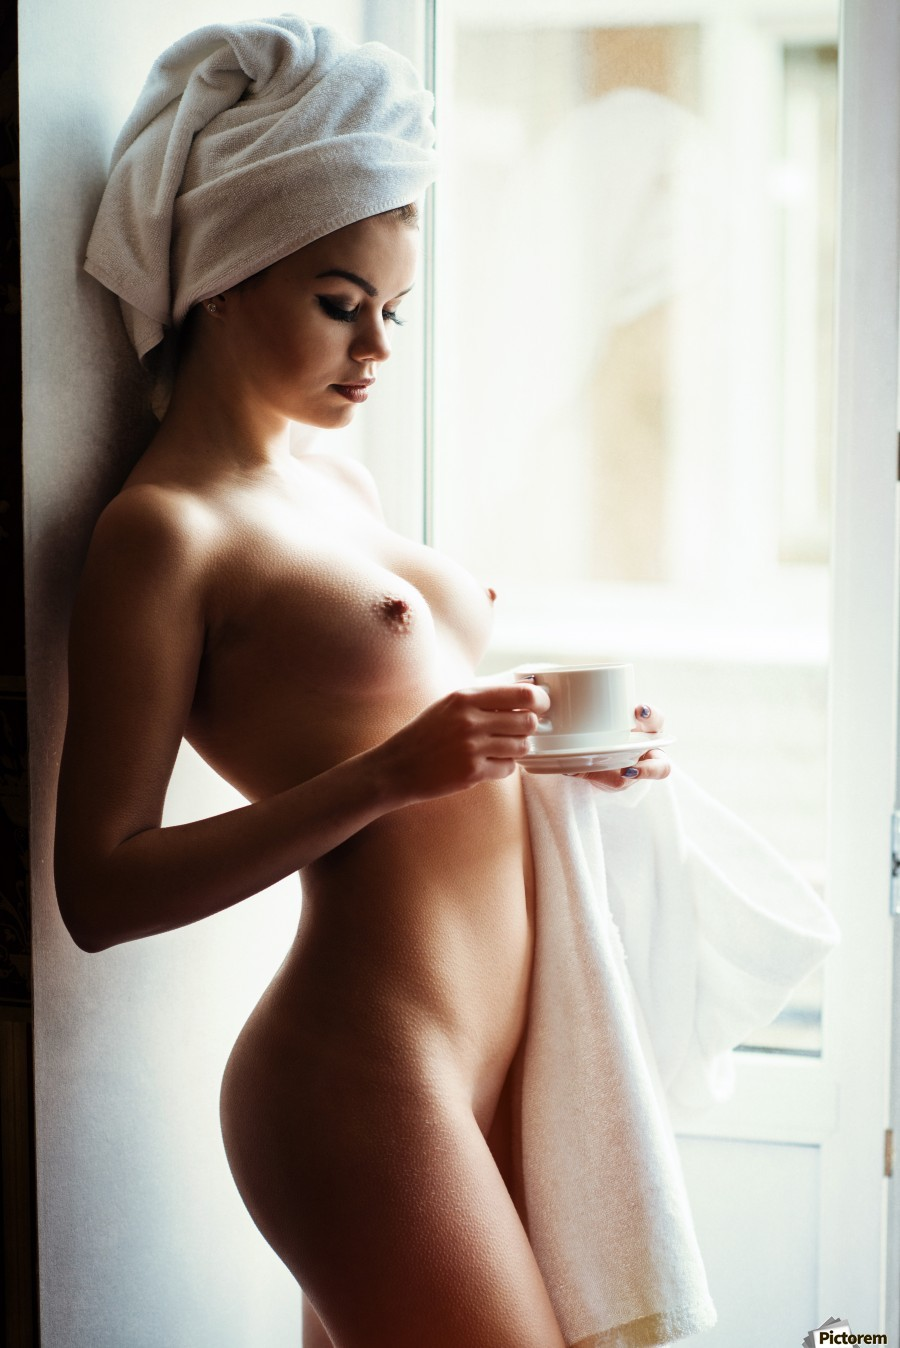 nude women drink tea